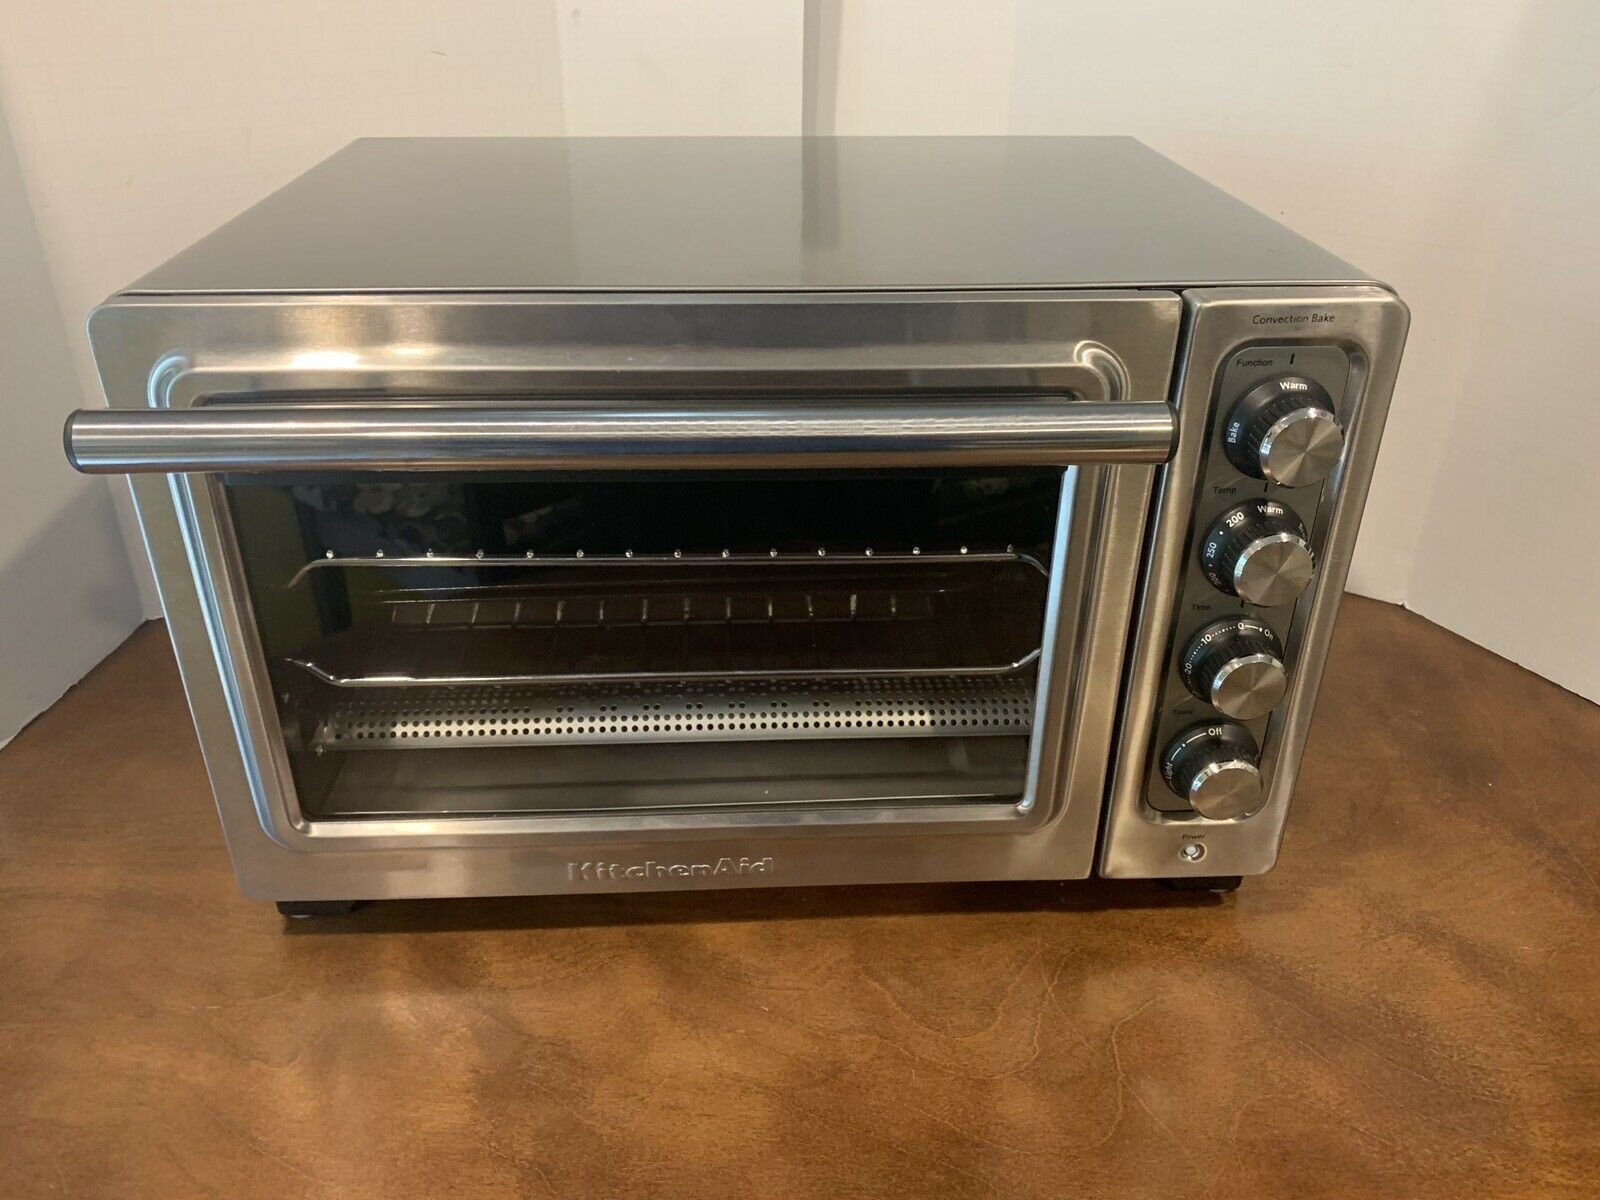 Kitchenaid Kco253q2ss Countertop Compact Oven Stainless Steel